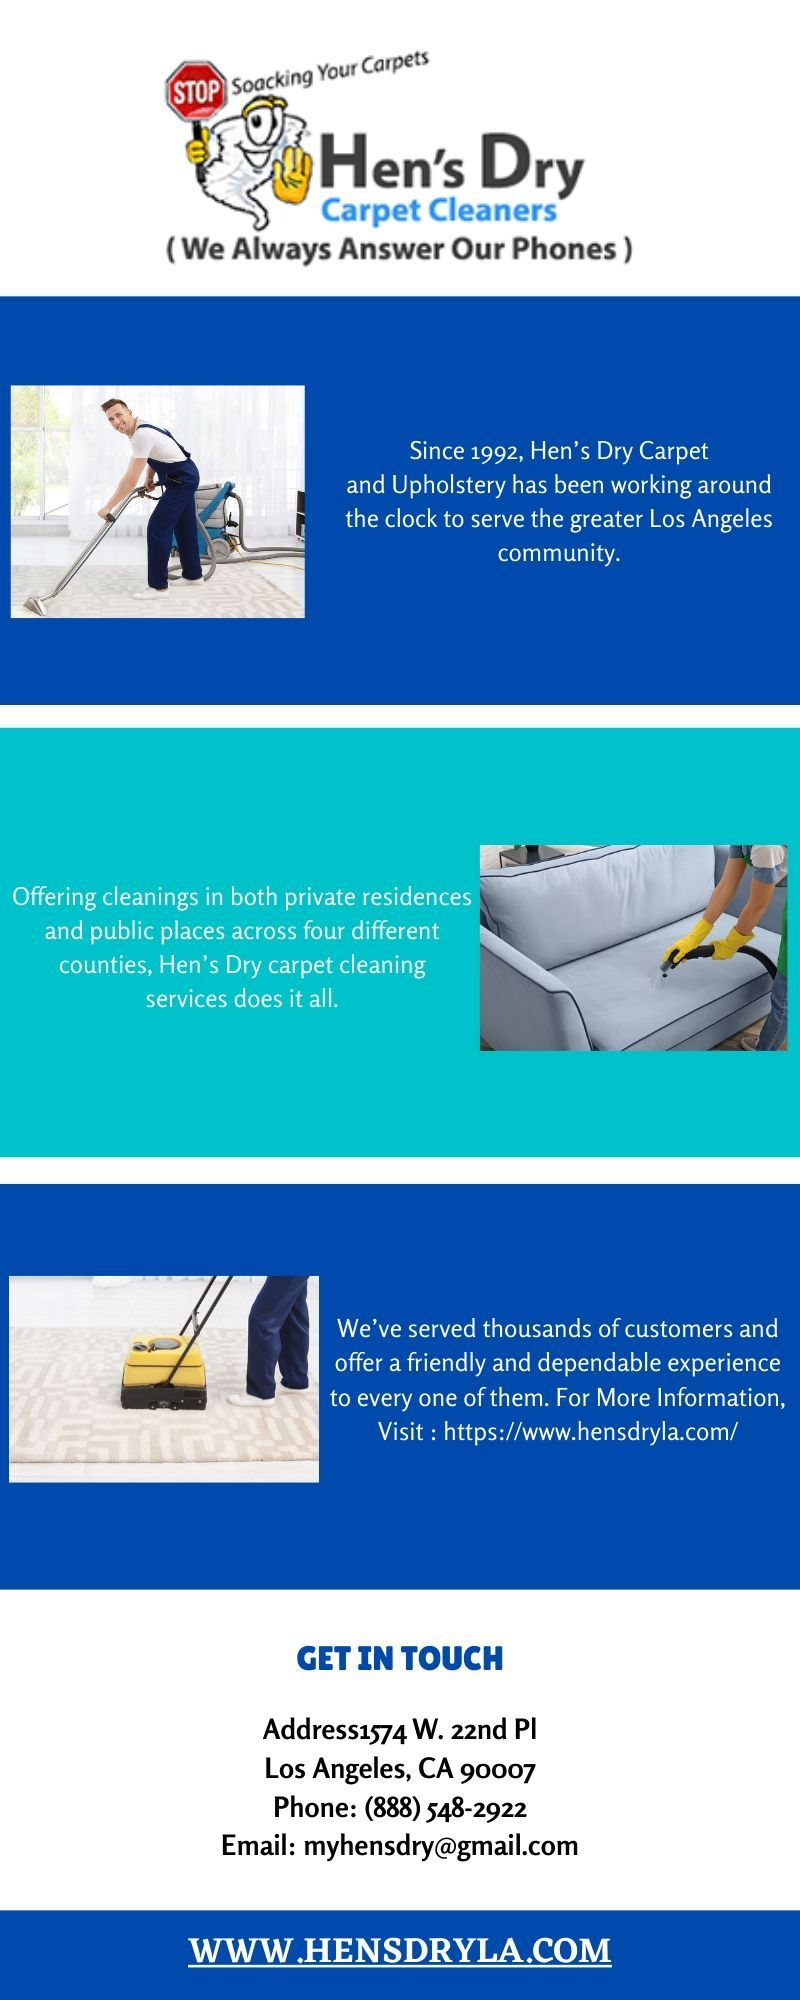 Los Angeles Carpet Cleaning Services In 2020 Dry Carpet Cleaning Carpet Cleaning Service Cleaning Upholstery